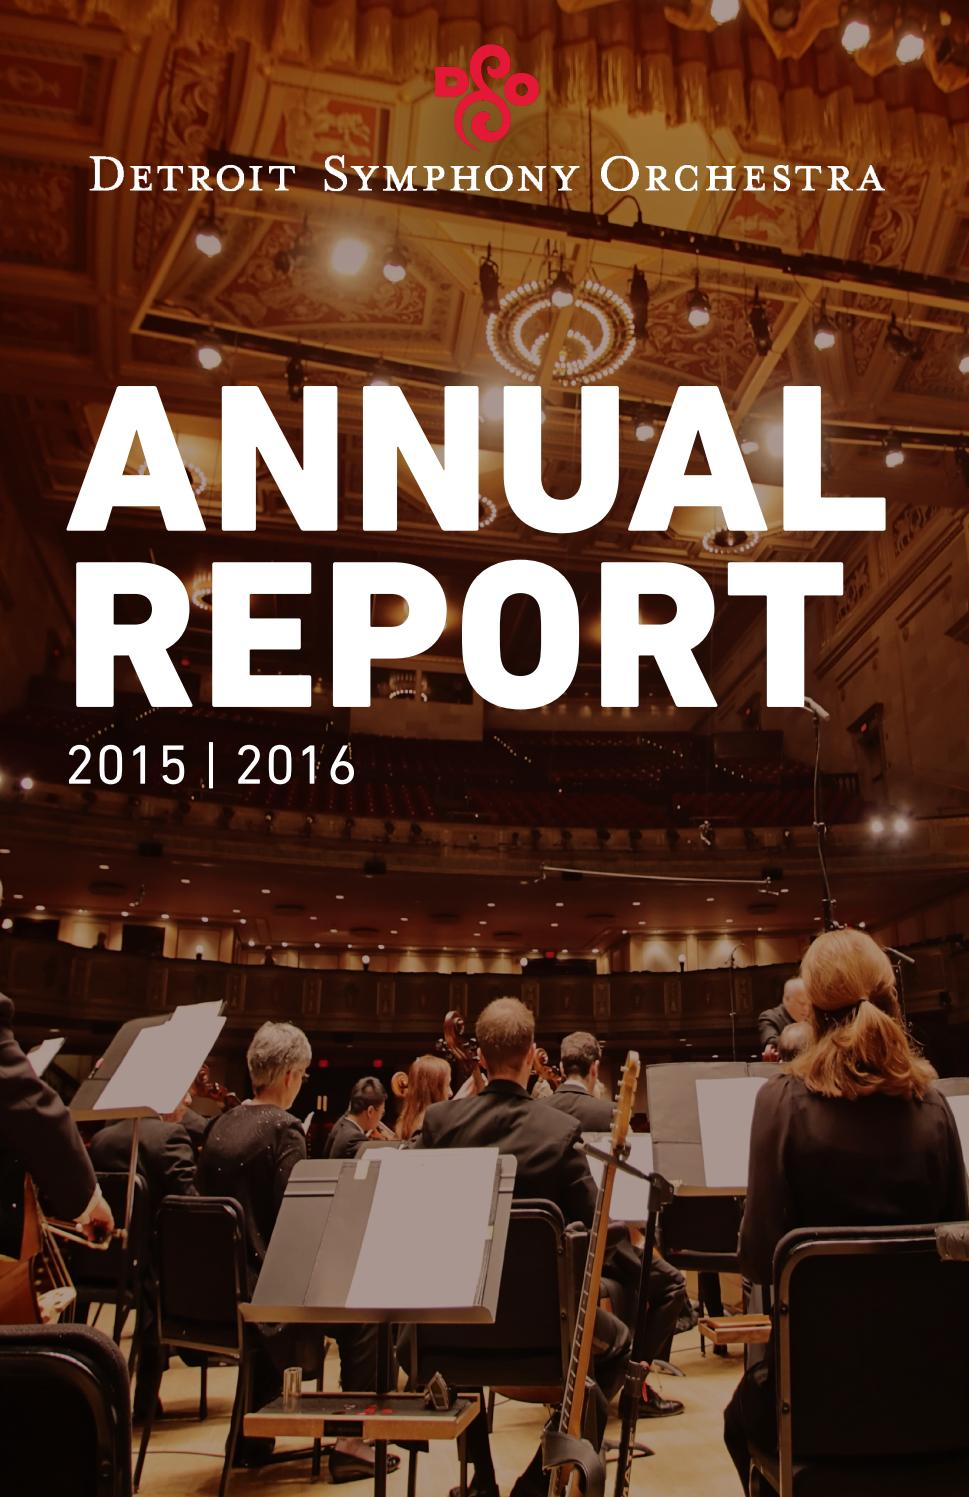 Dso Annual Report 2015 2016 Season By Detroit Symphony